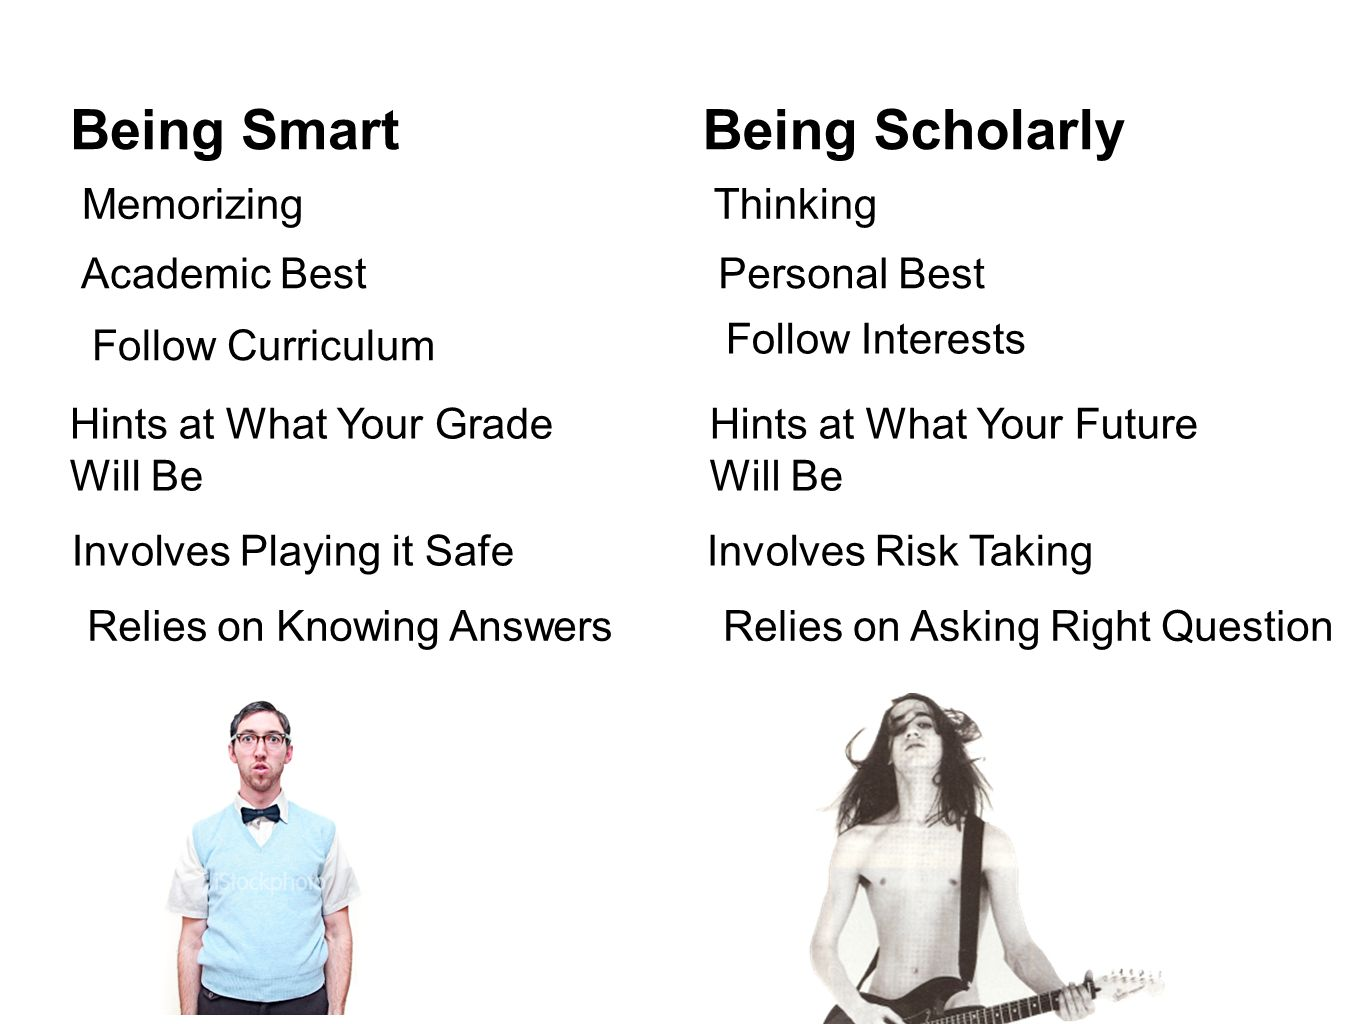 MemorizingThinking Academic BestPersonal Best Follow Curriculum Follow Interests Hints at What Your Grade Will Be Hints at What Your Future Will Be Involves Risk Taking Involves Playing it Safe Relies on Knowing AnswersRelies on Asking Right Question Being ScholarlyBeing Smart